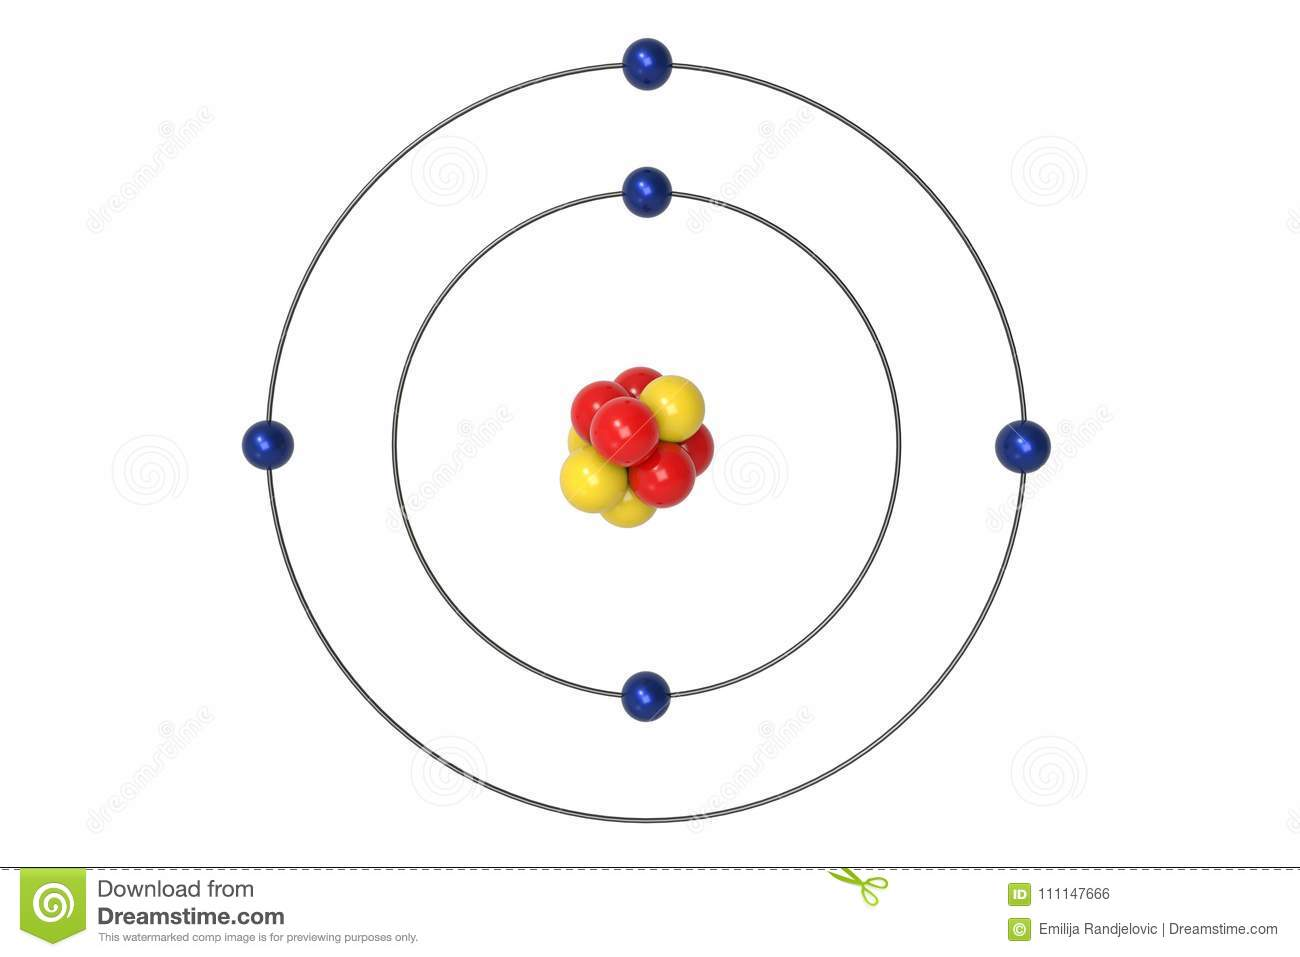 thorium bohr diagram